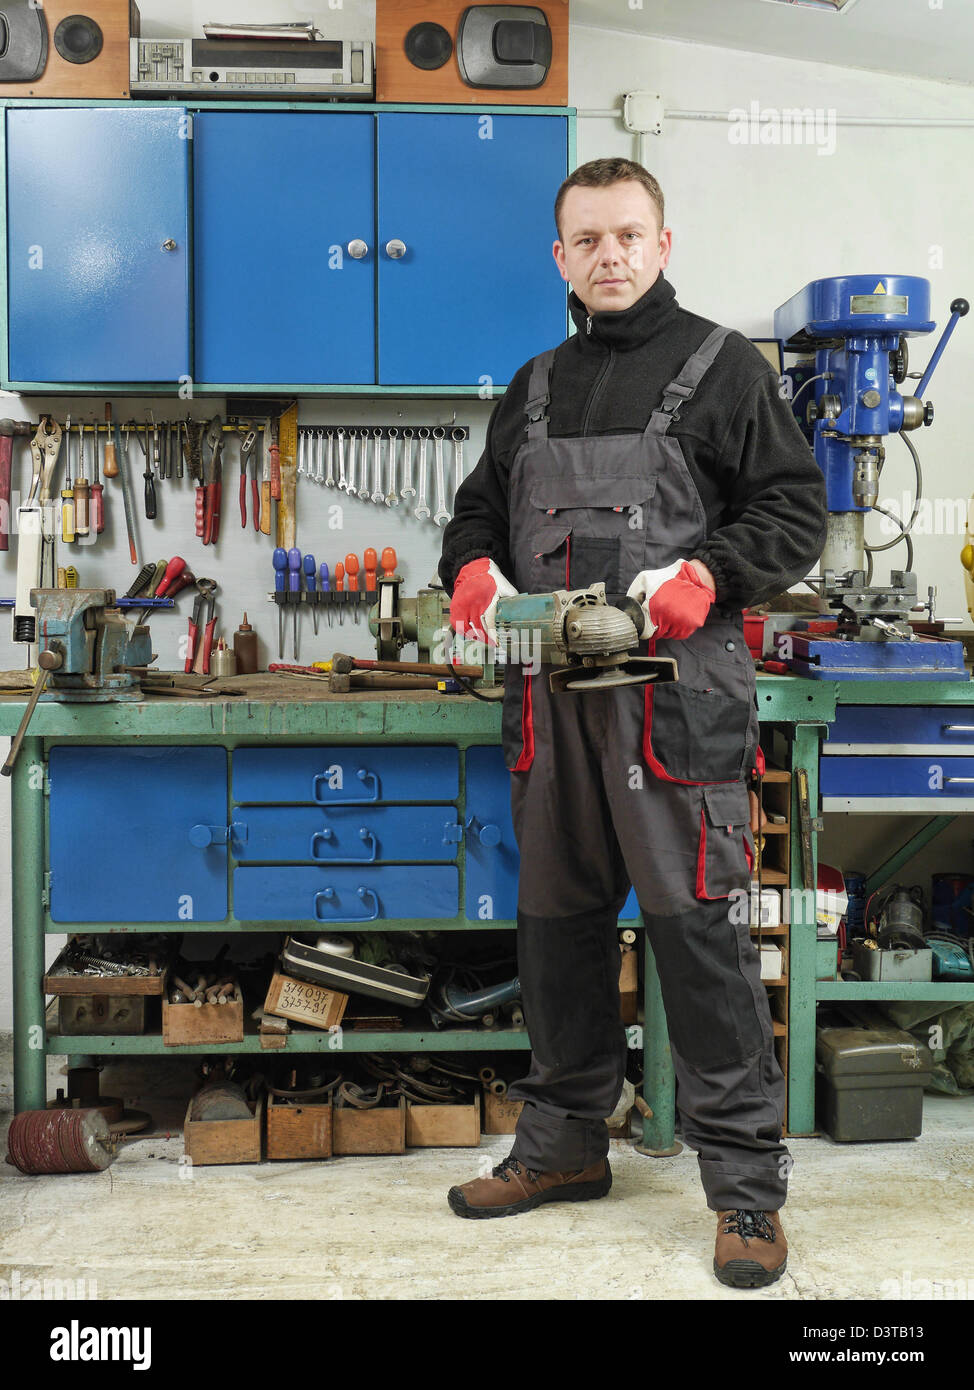 Locksmith holding angular grinder while posing in his workshop - Stock Image